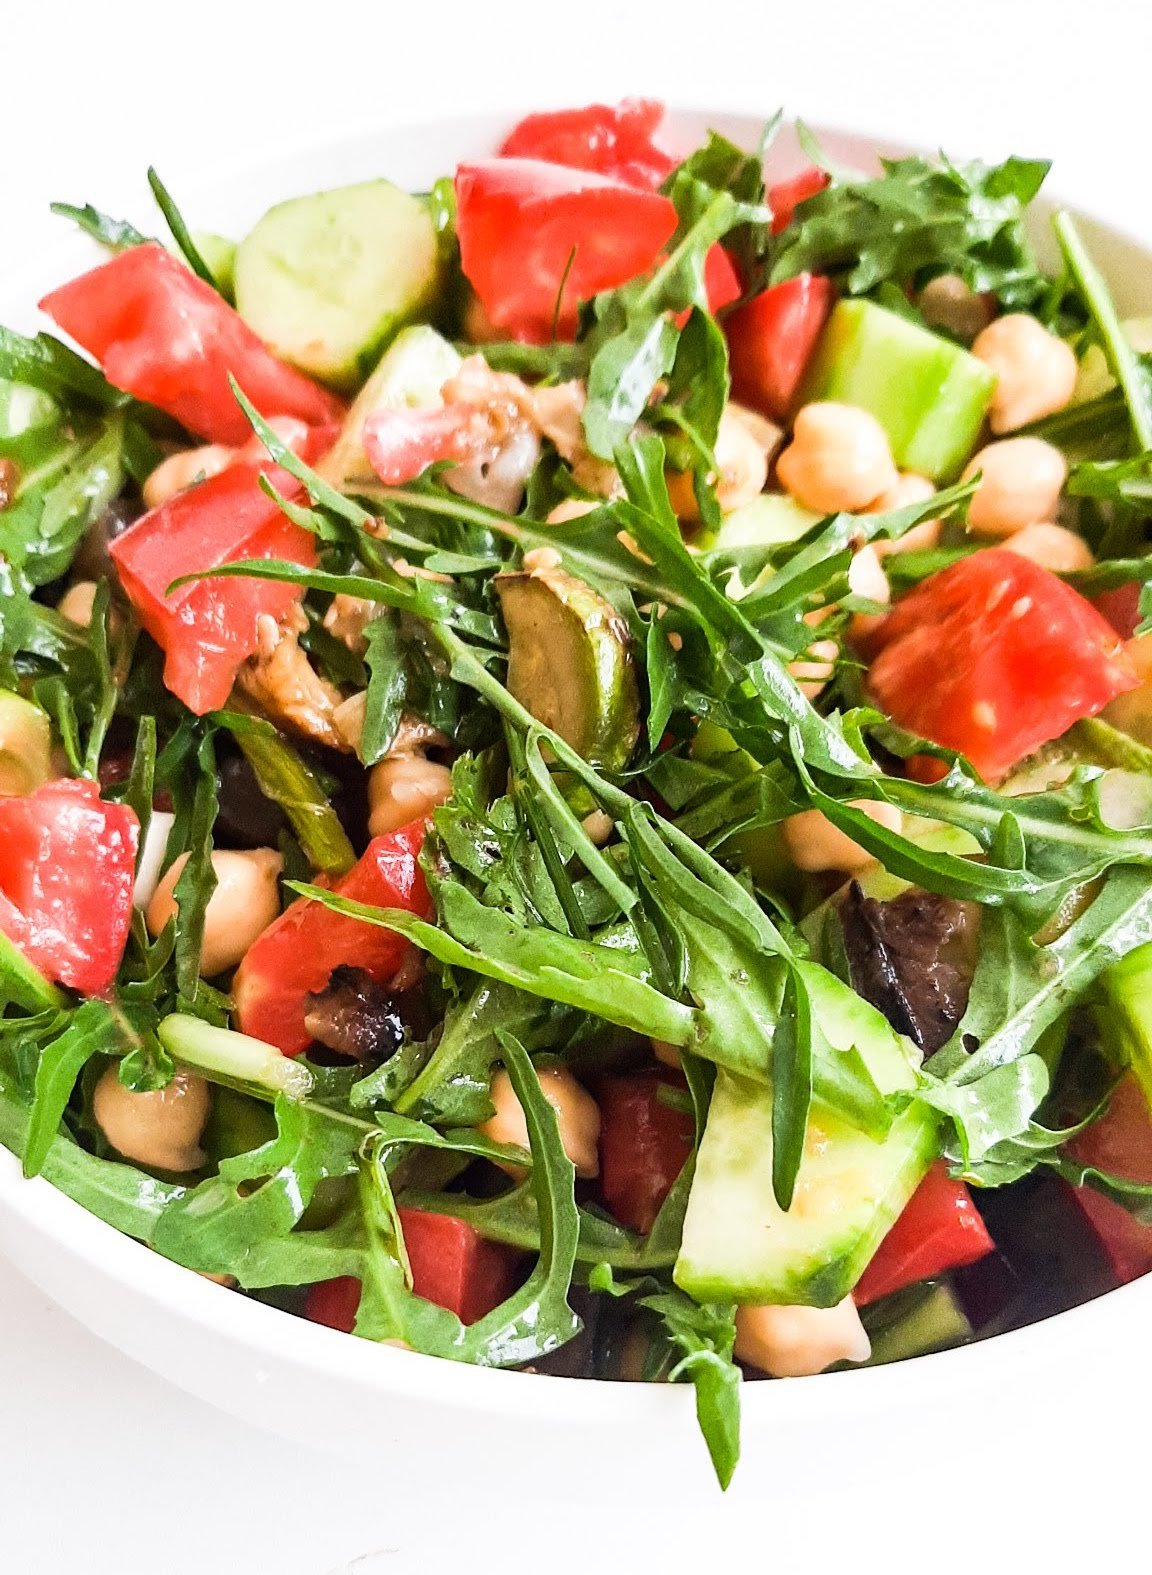 Tomato, arugula chickpea salad is a refreshing and filling healthy salad recipe that is easy, delicious and quick! This lunch salad recipe is also great for a side dish and it's ready in around 10 minutes and requires little preparation.